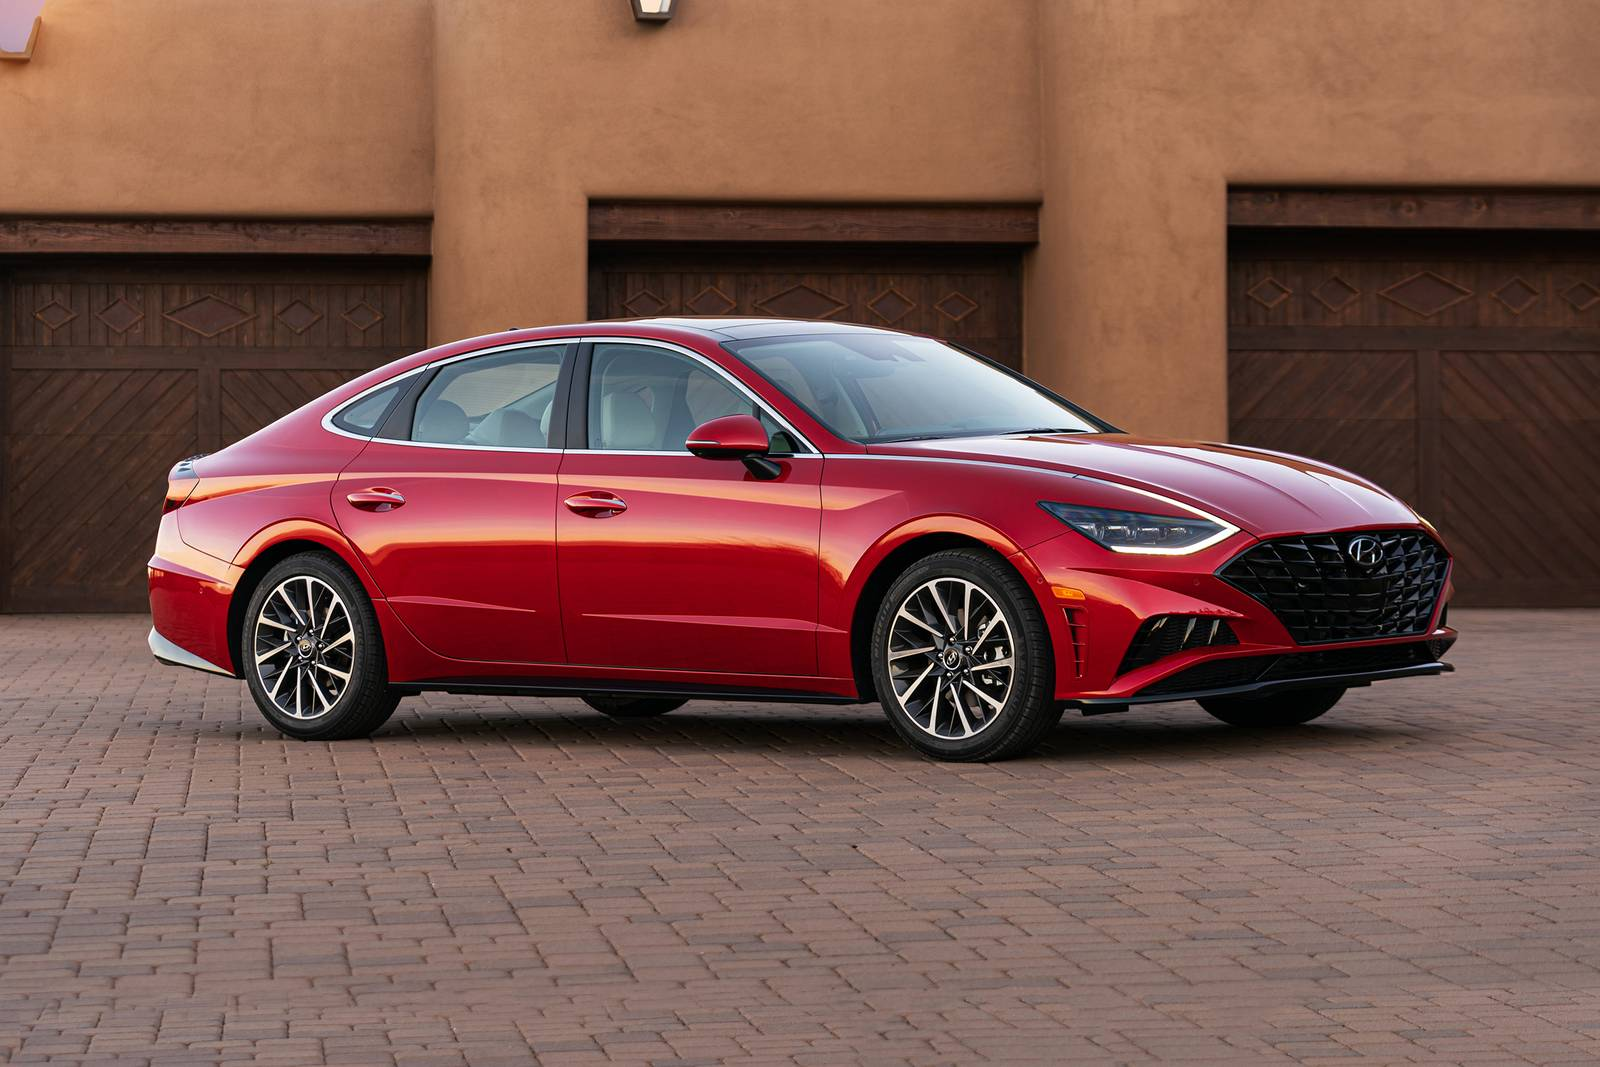 2021 Hyundai Sonata Prices, Reviews, and Pictures | Edmunds